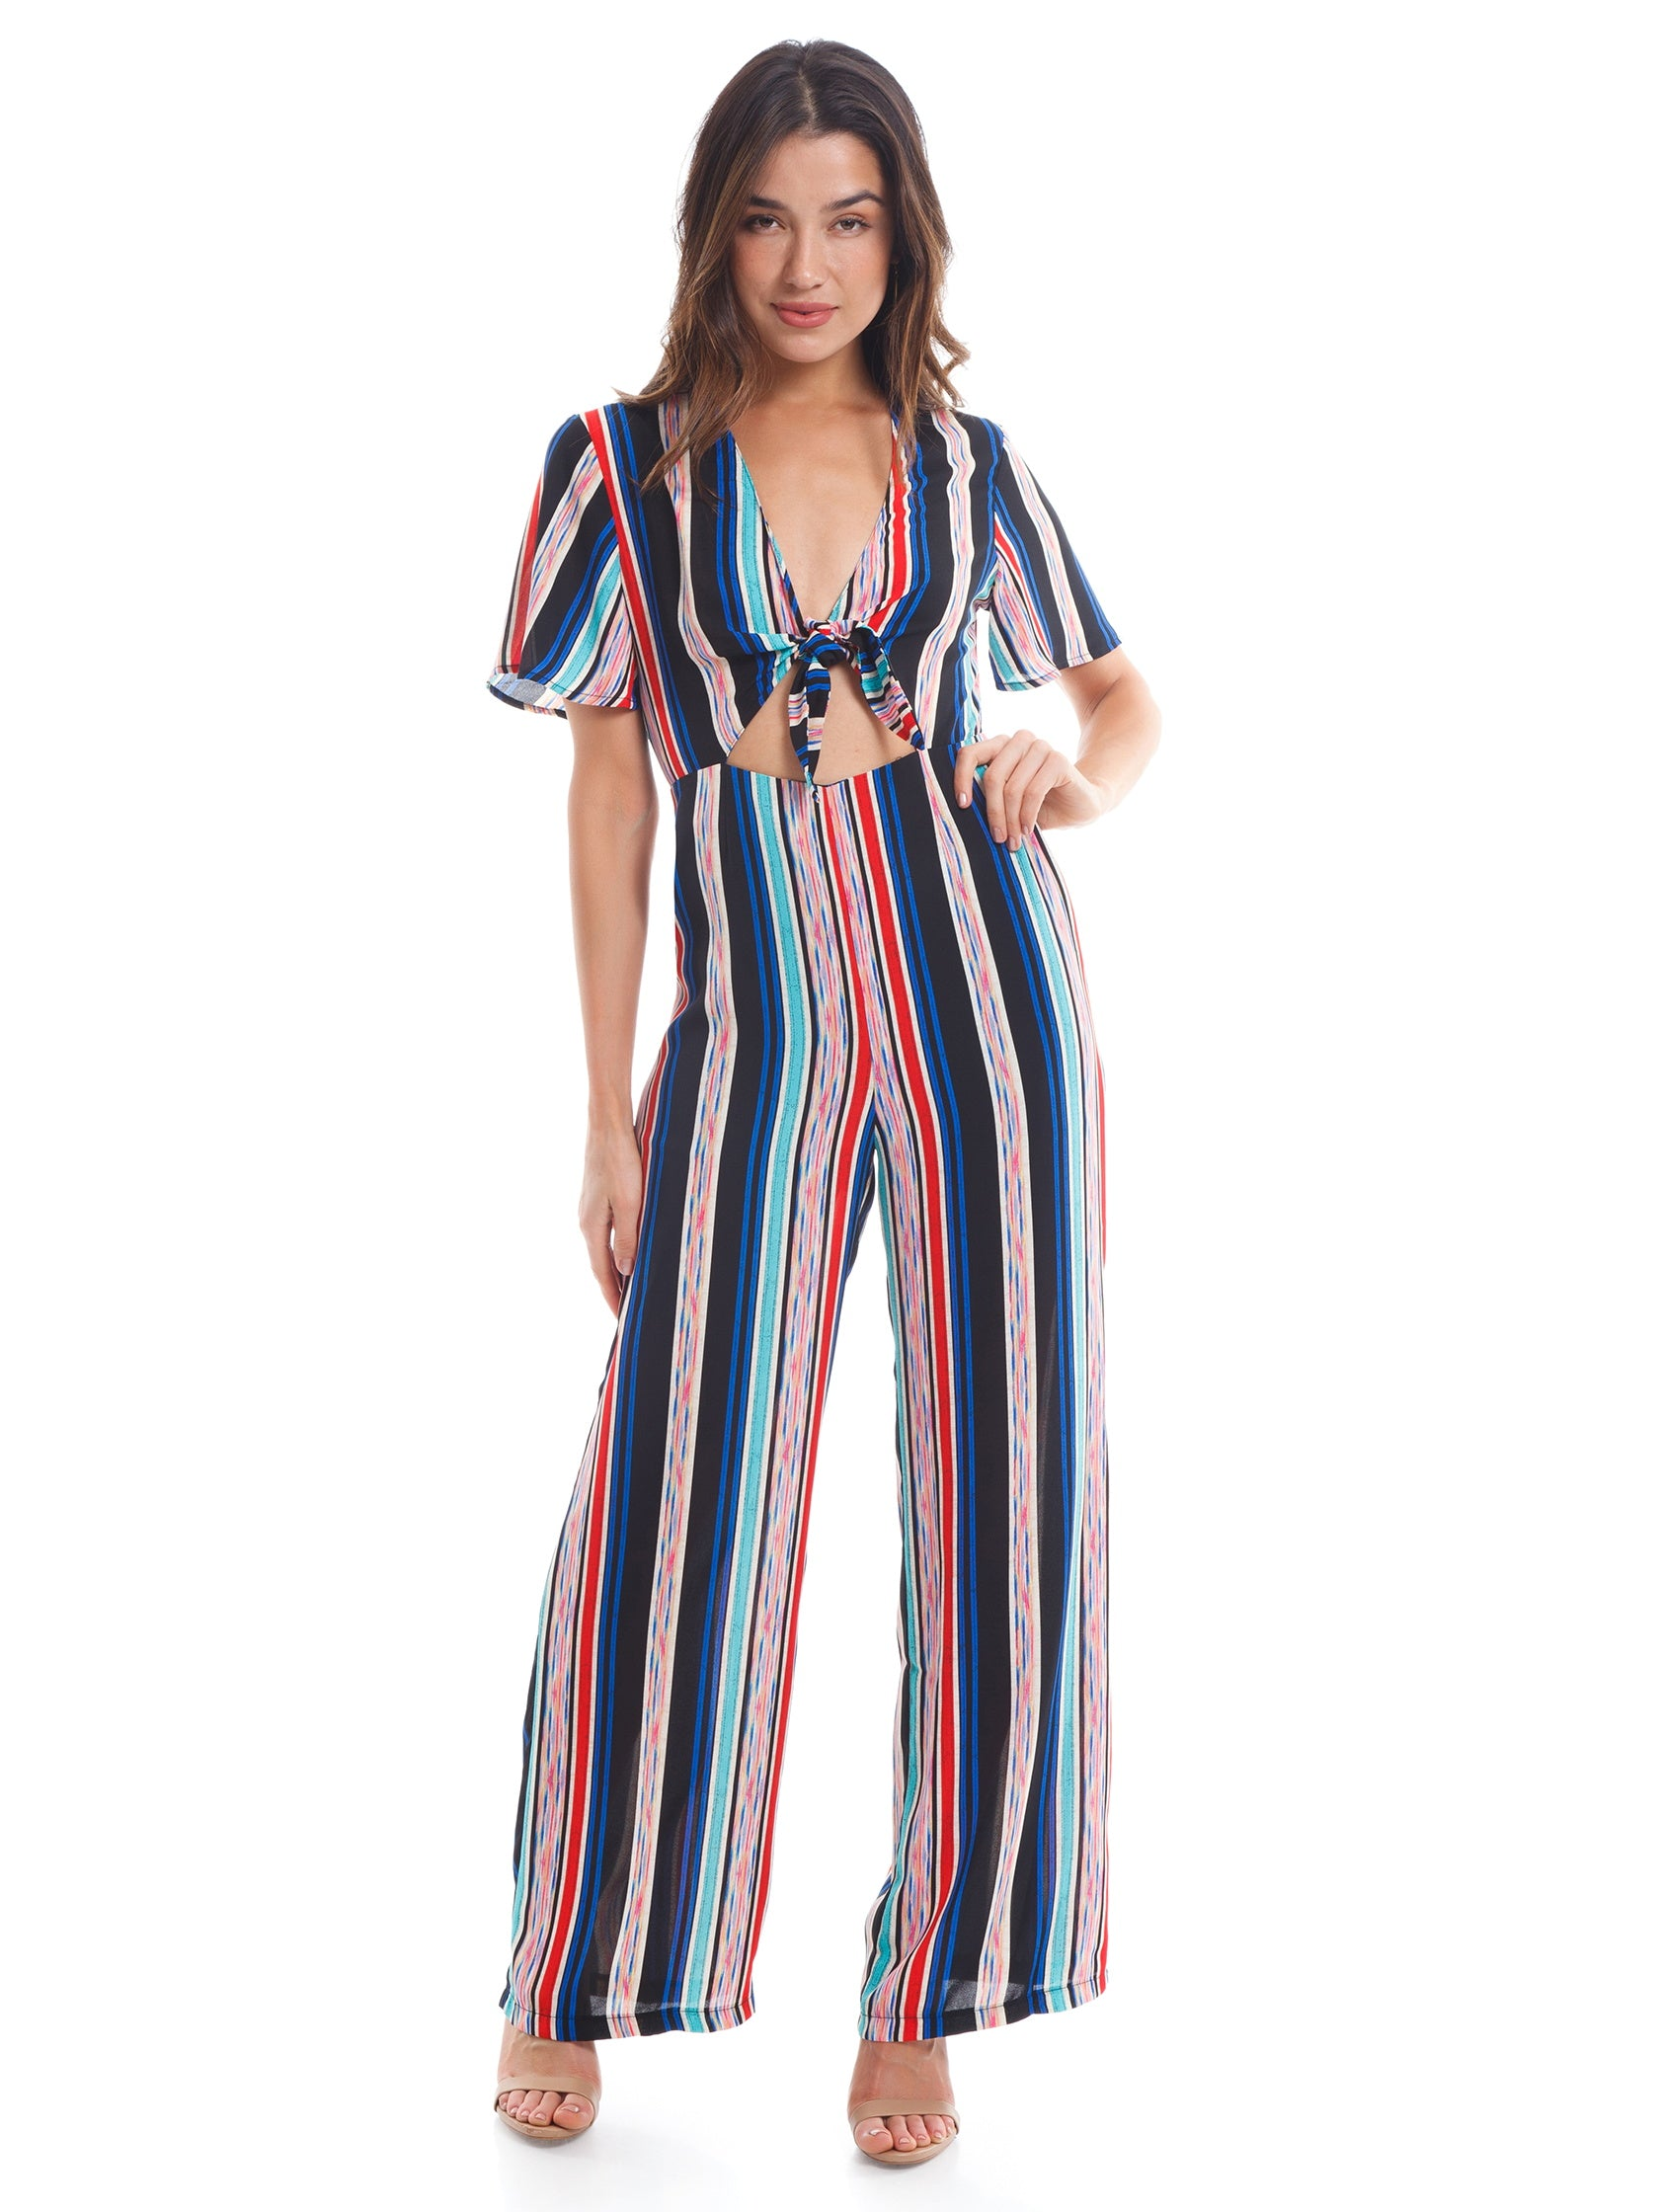 Girl outfit in a jumpsuit rental from Lush called Daydreamer Jumpsuit